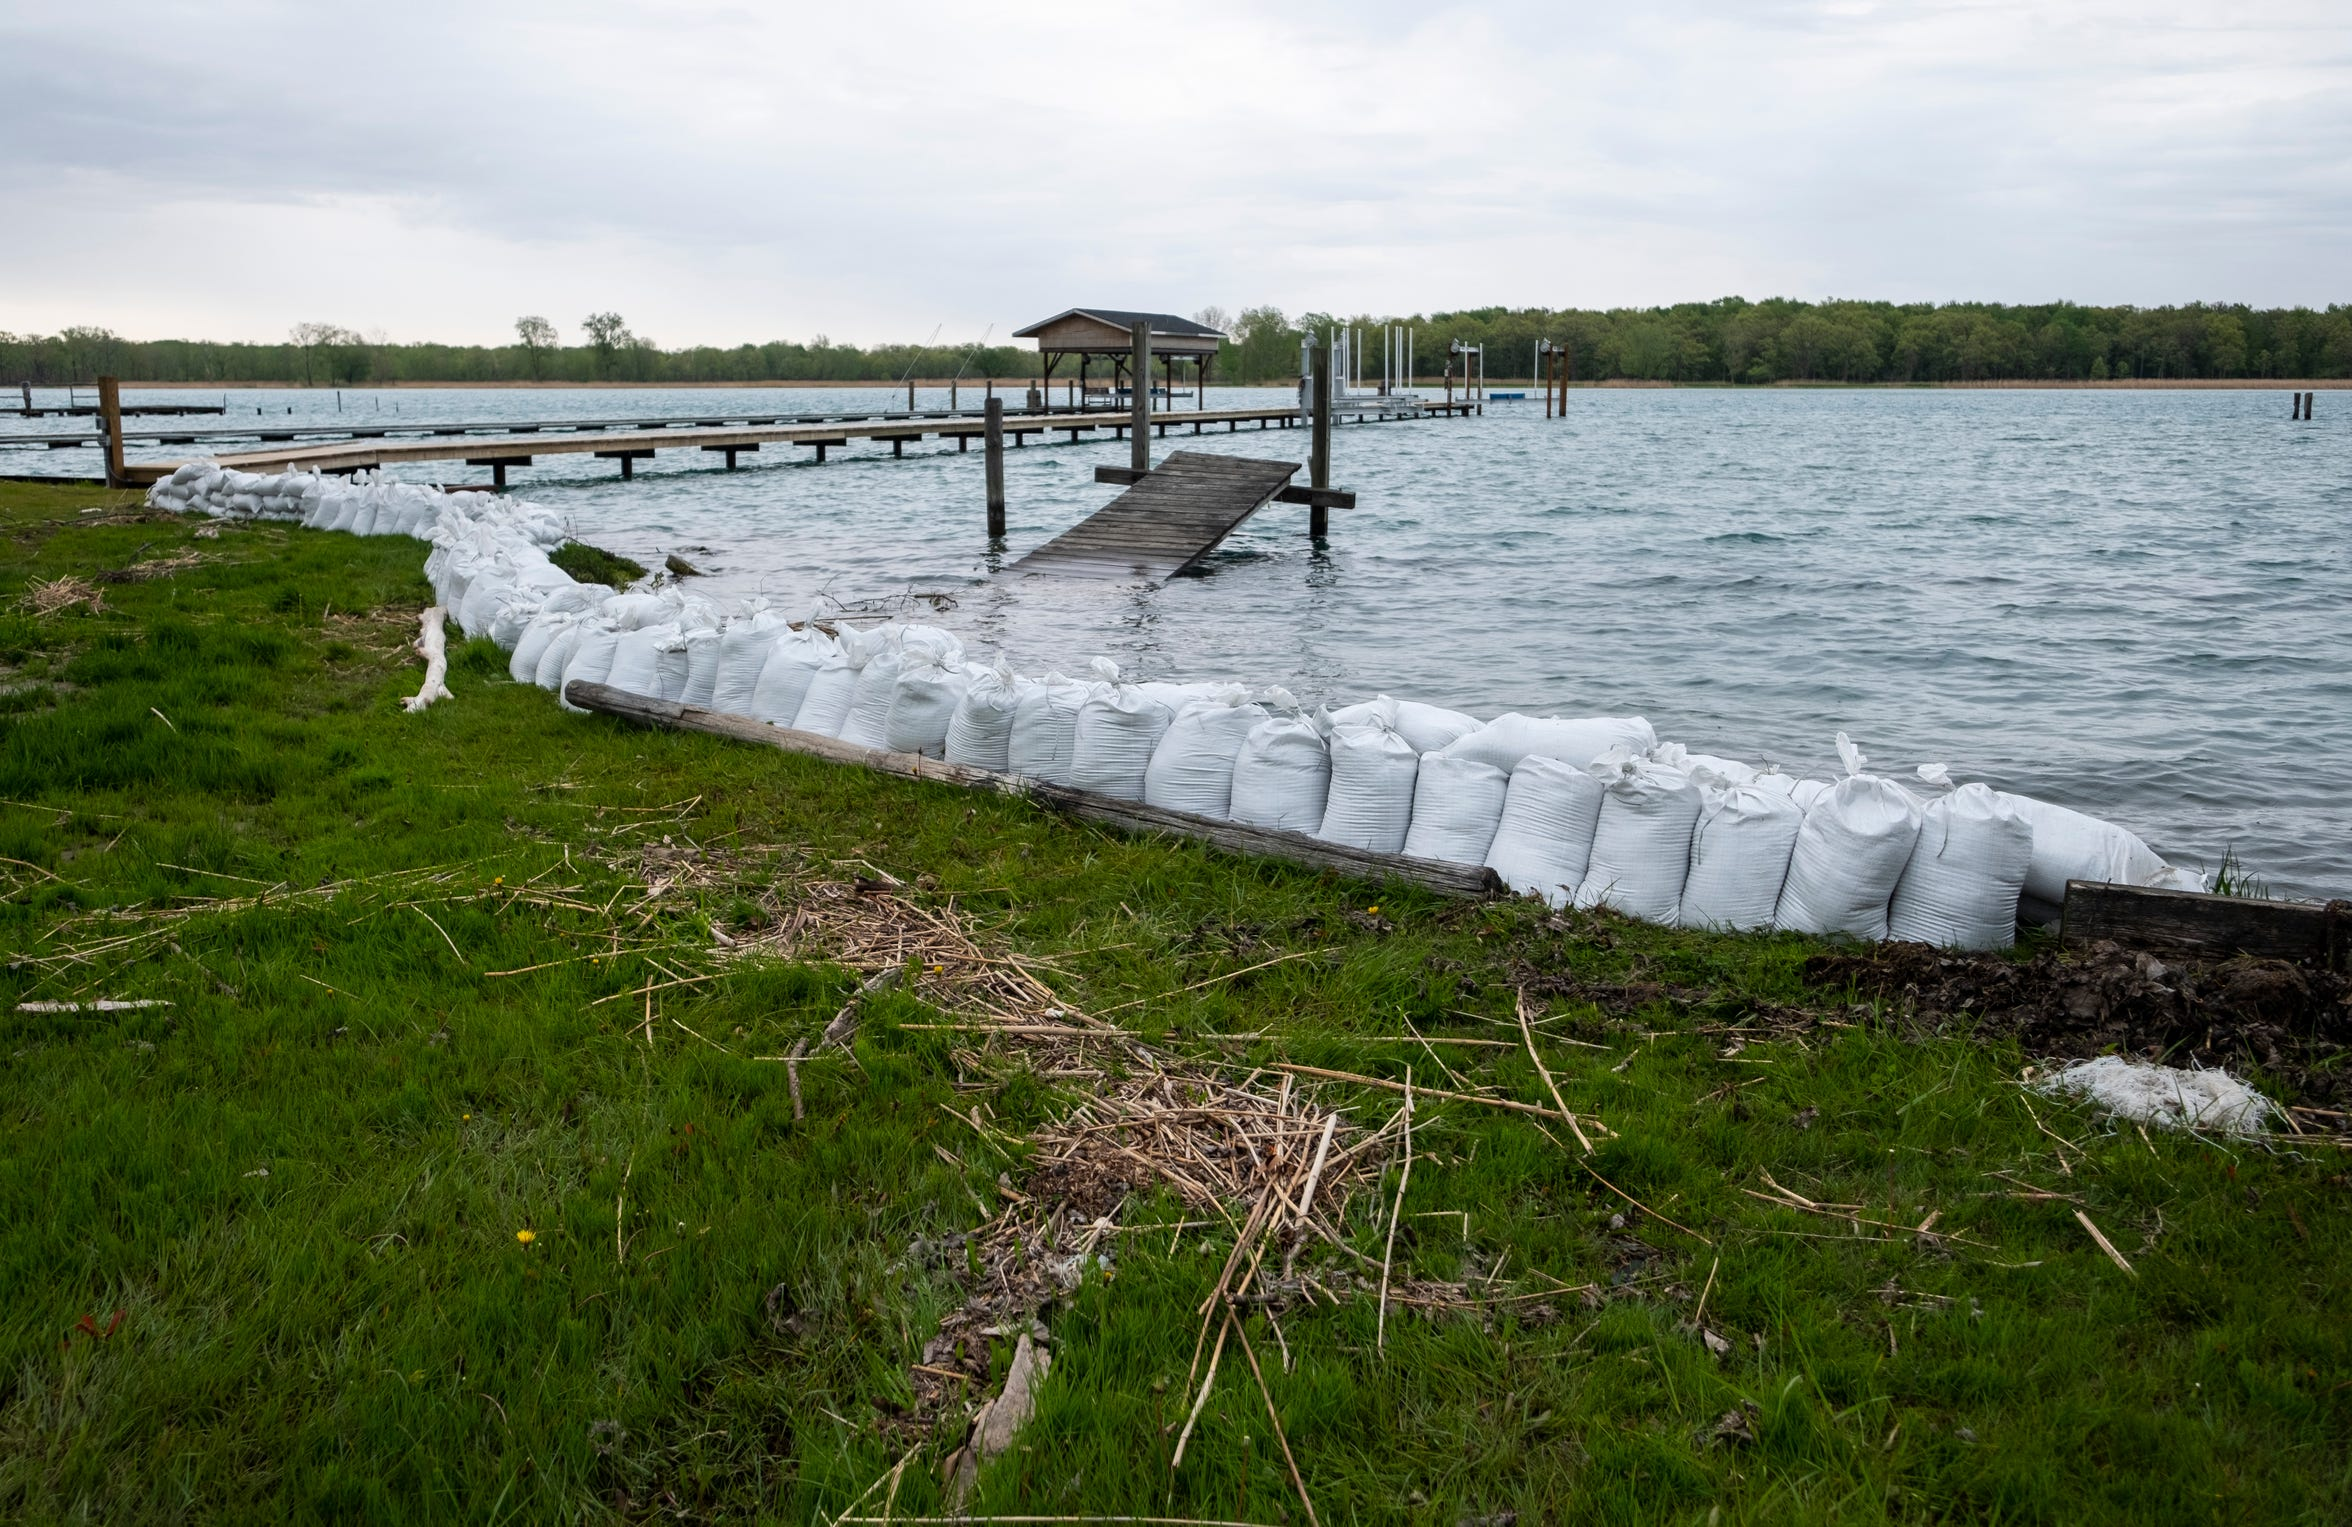 Sandbags are seen stacked along the St. Clair River in Harsens Island Wednesday, May 22, 2019. Harsens Island residents are being asked to reduce water consumption to prevent in preparation for rising water levels.